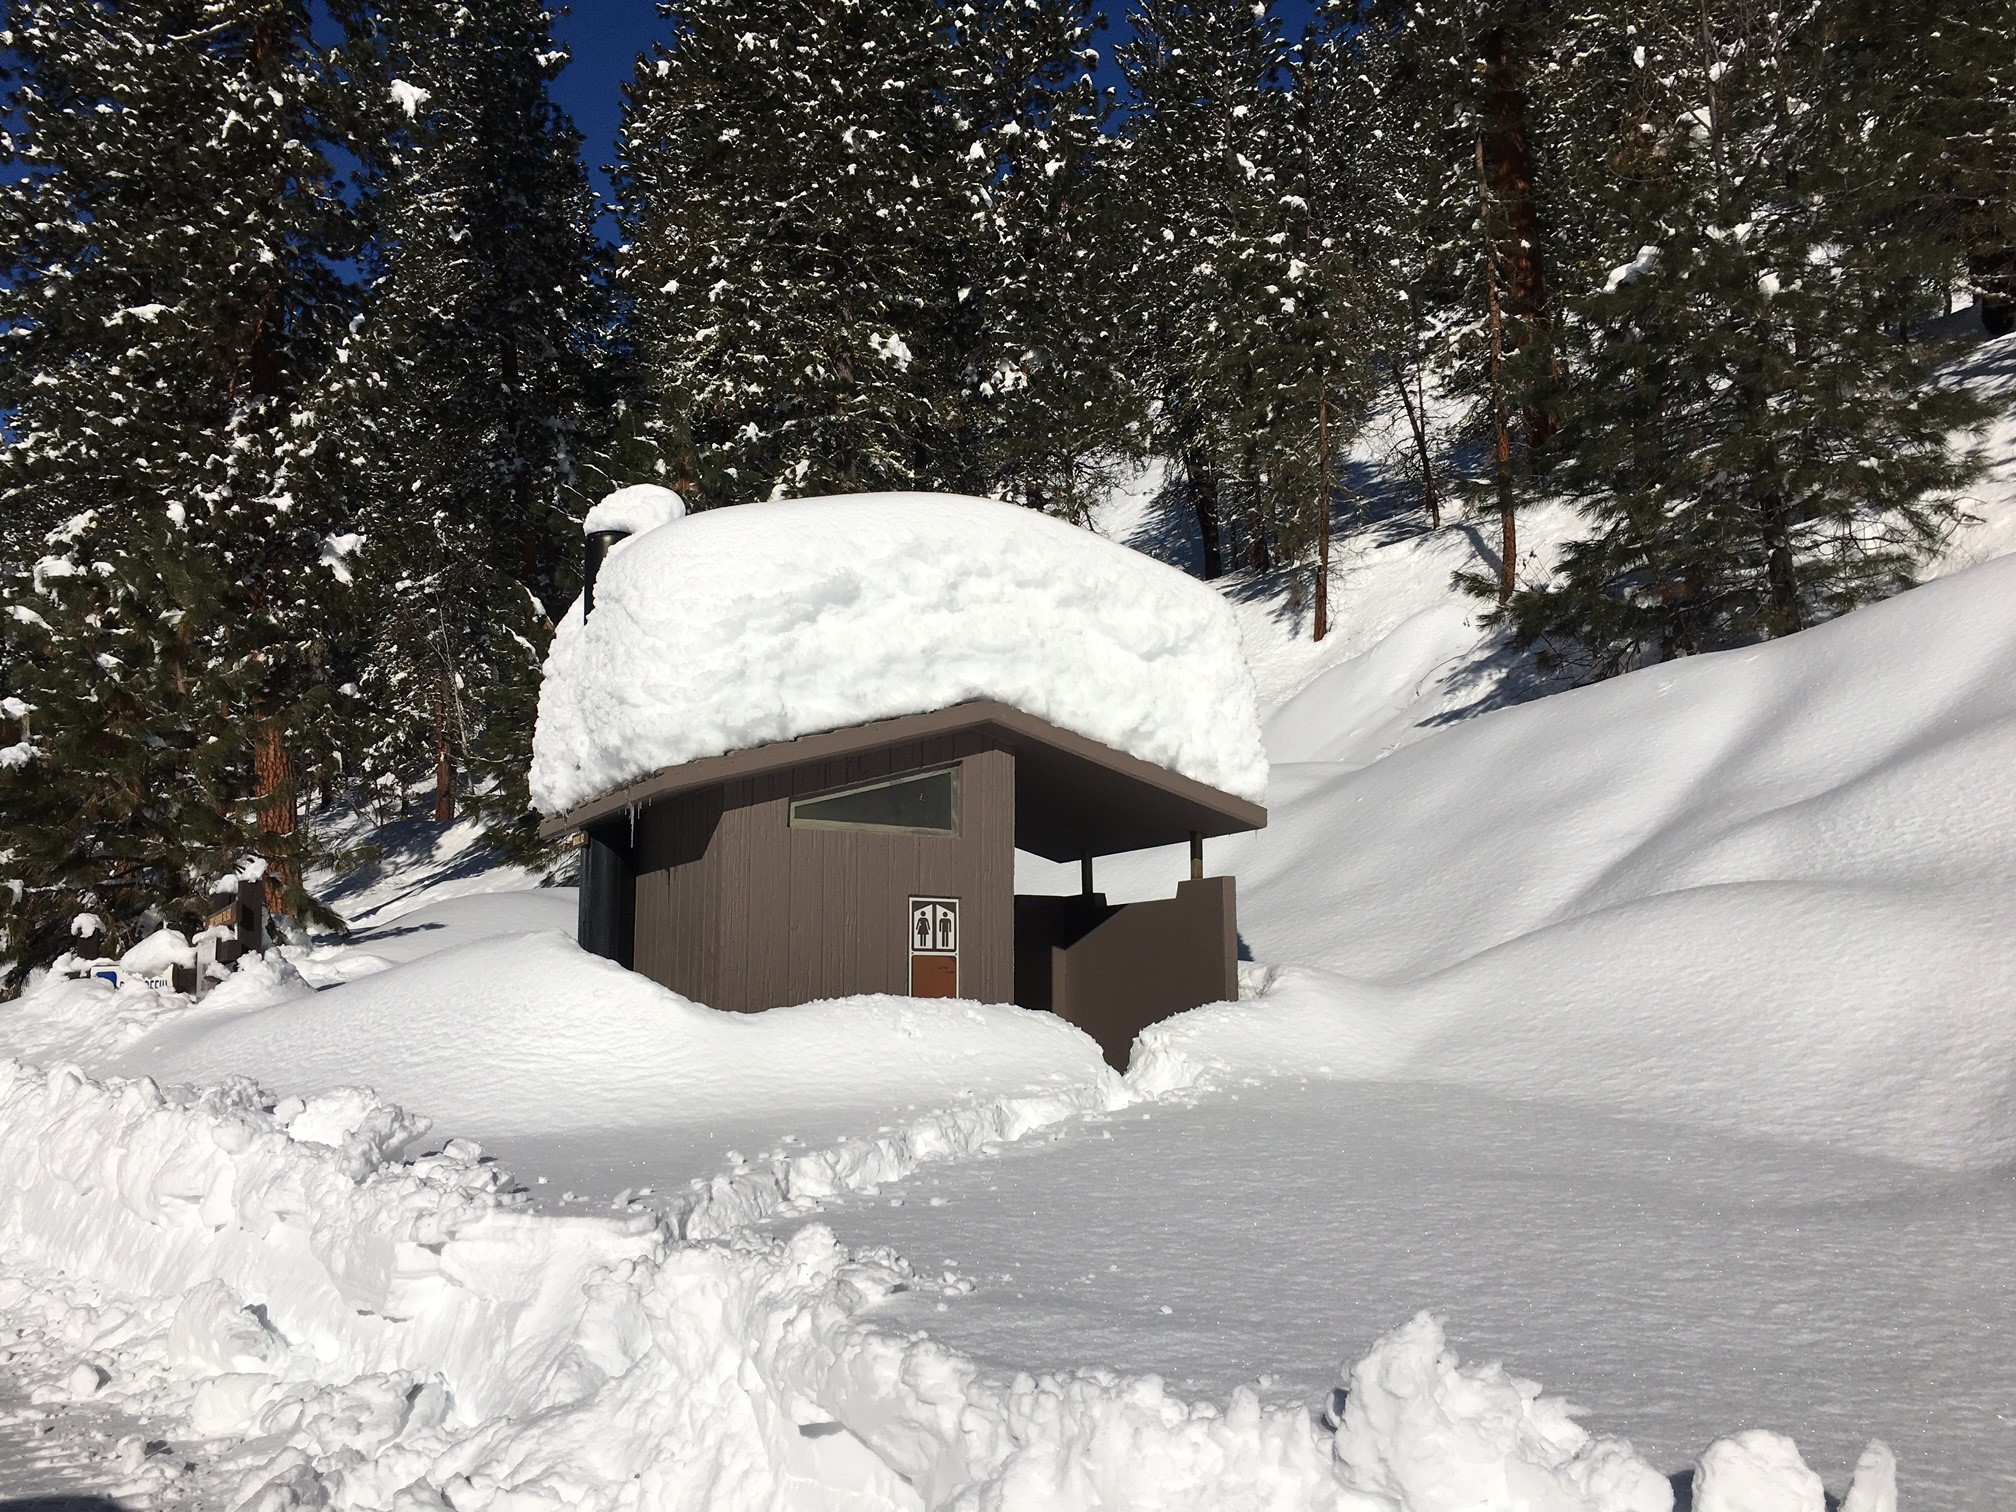 Photo of deep snow almost covering outhouse